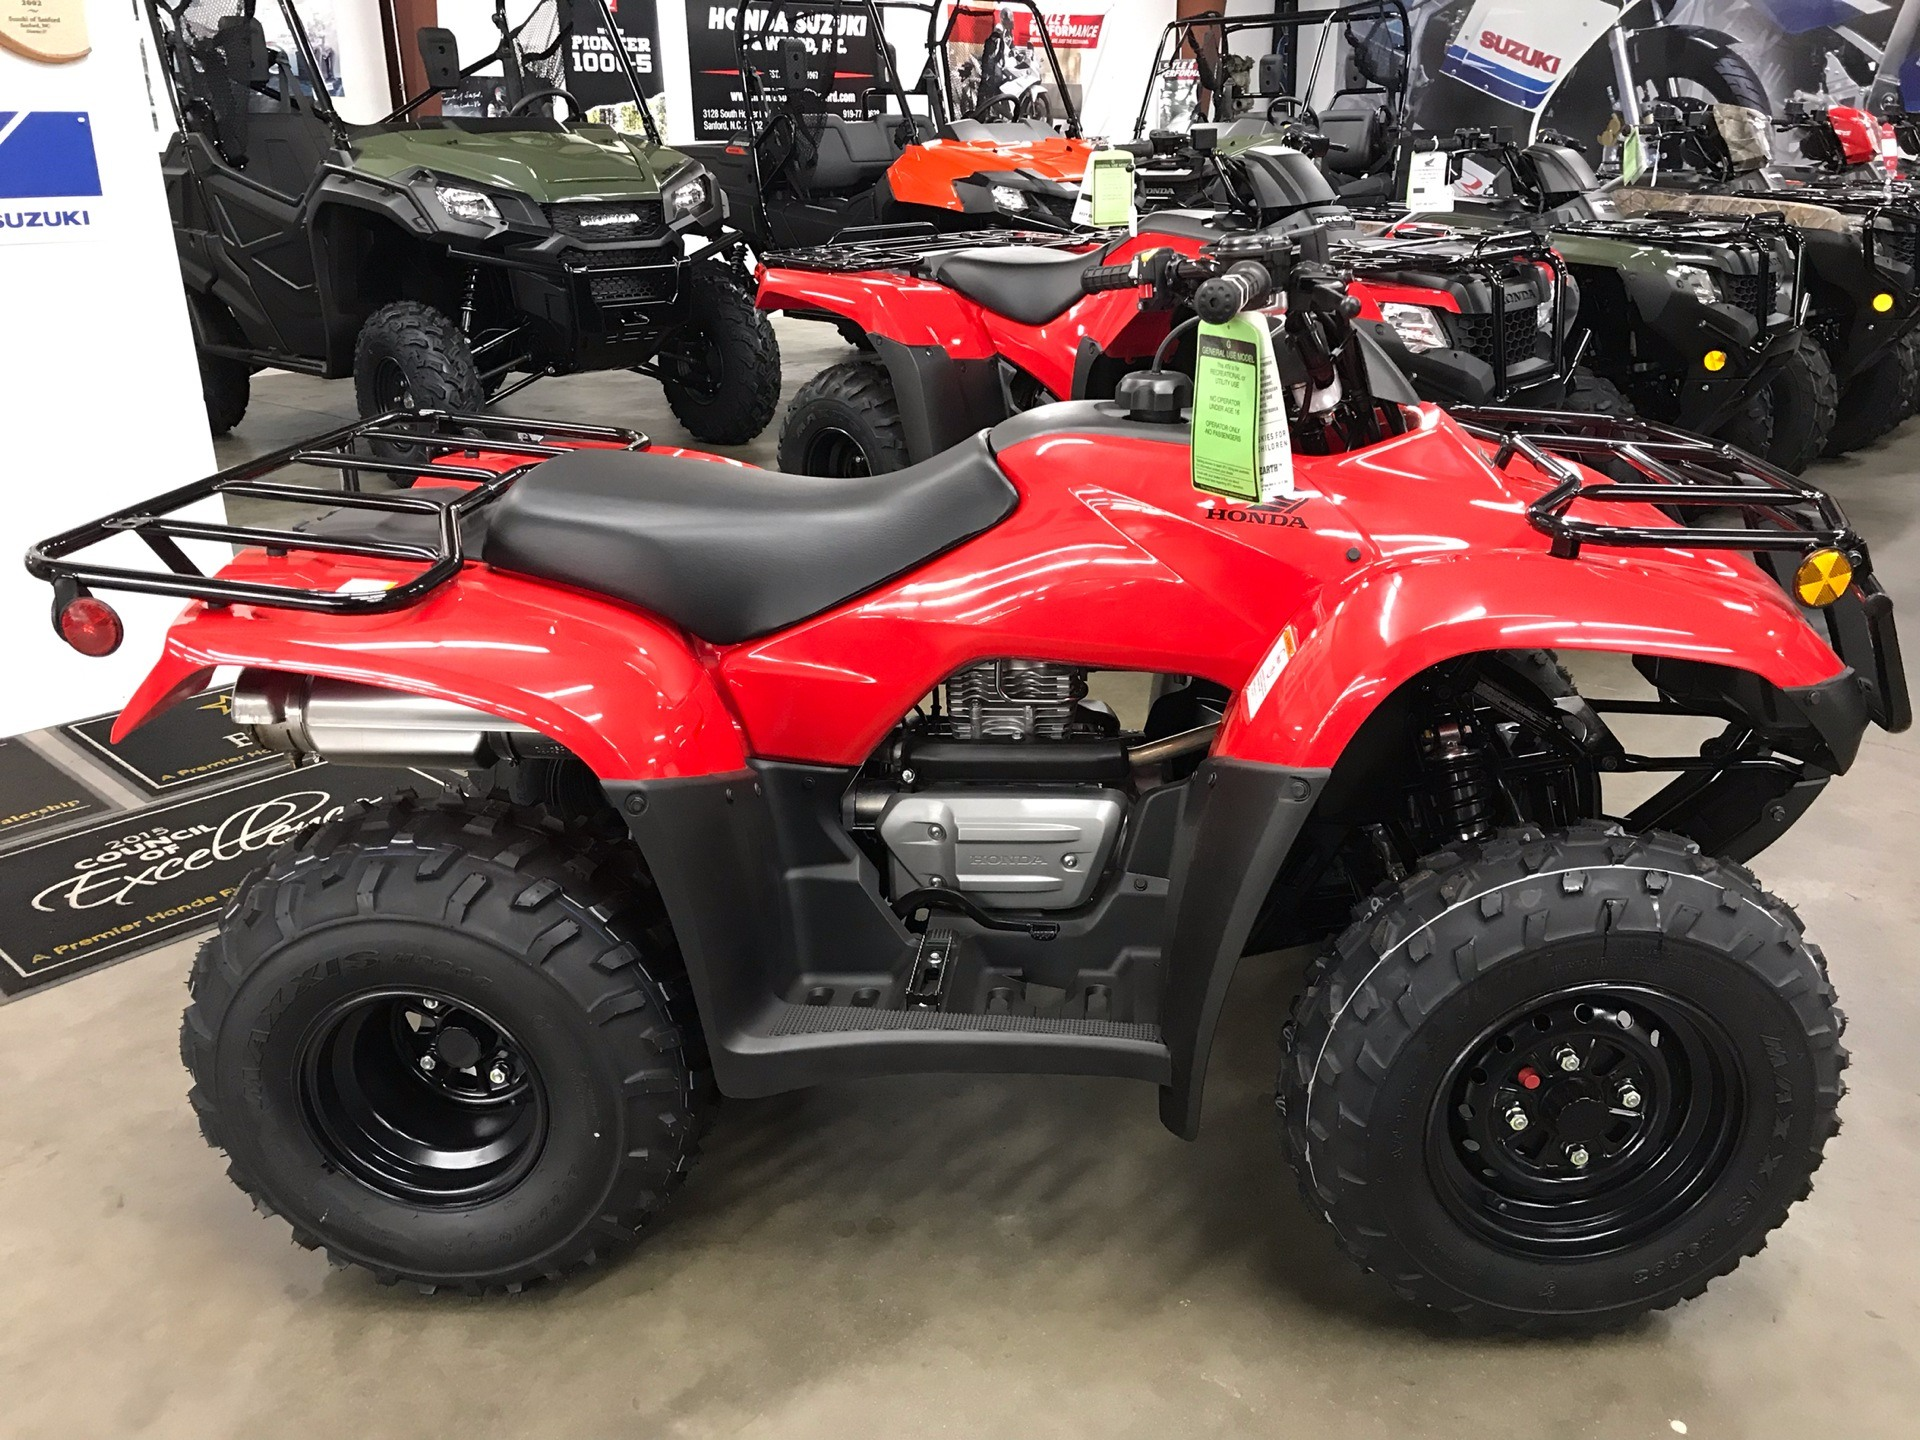 2019 Honda FourTrax Recon in Sanford, North Carolina - Photo 6